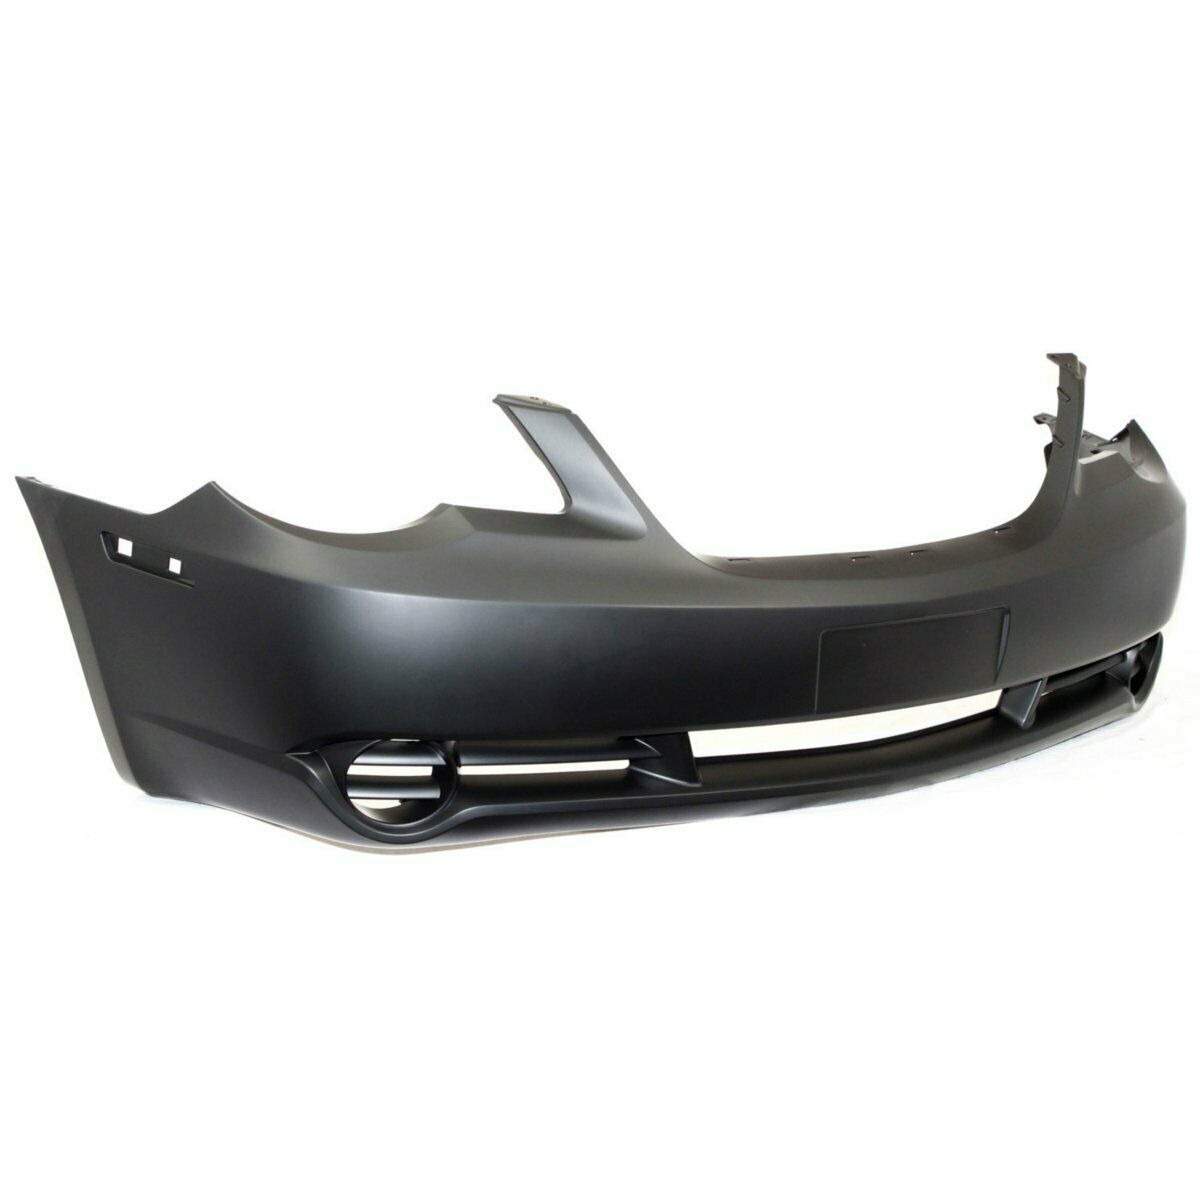 2007-2010 Chrysler Sebring w/o Fog Front Bumper Painted to Match